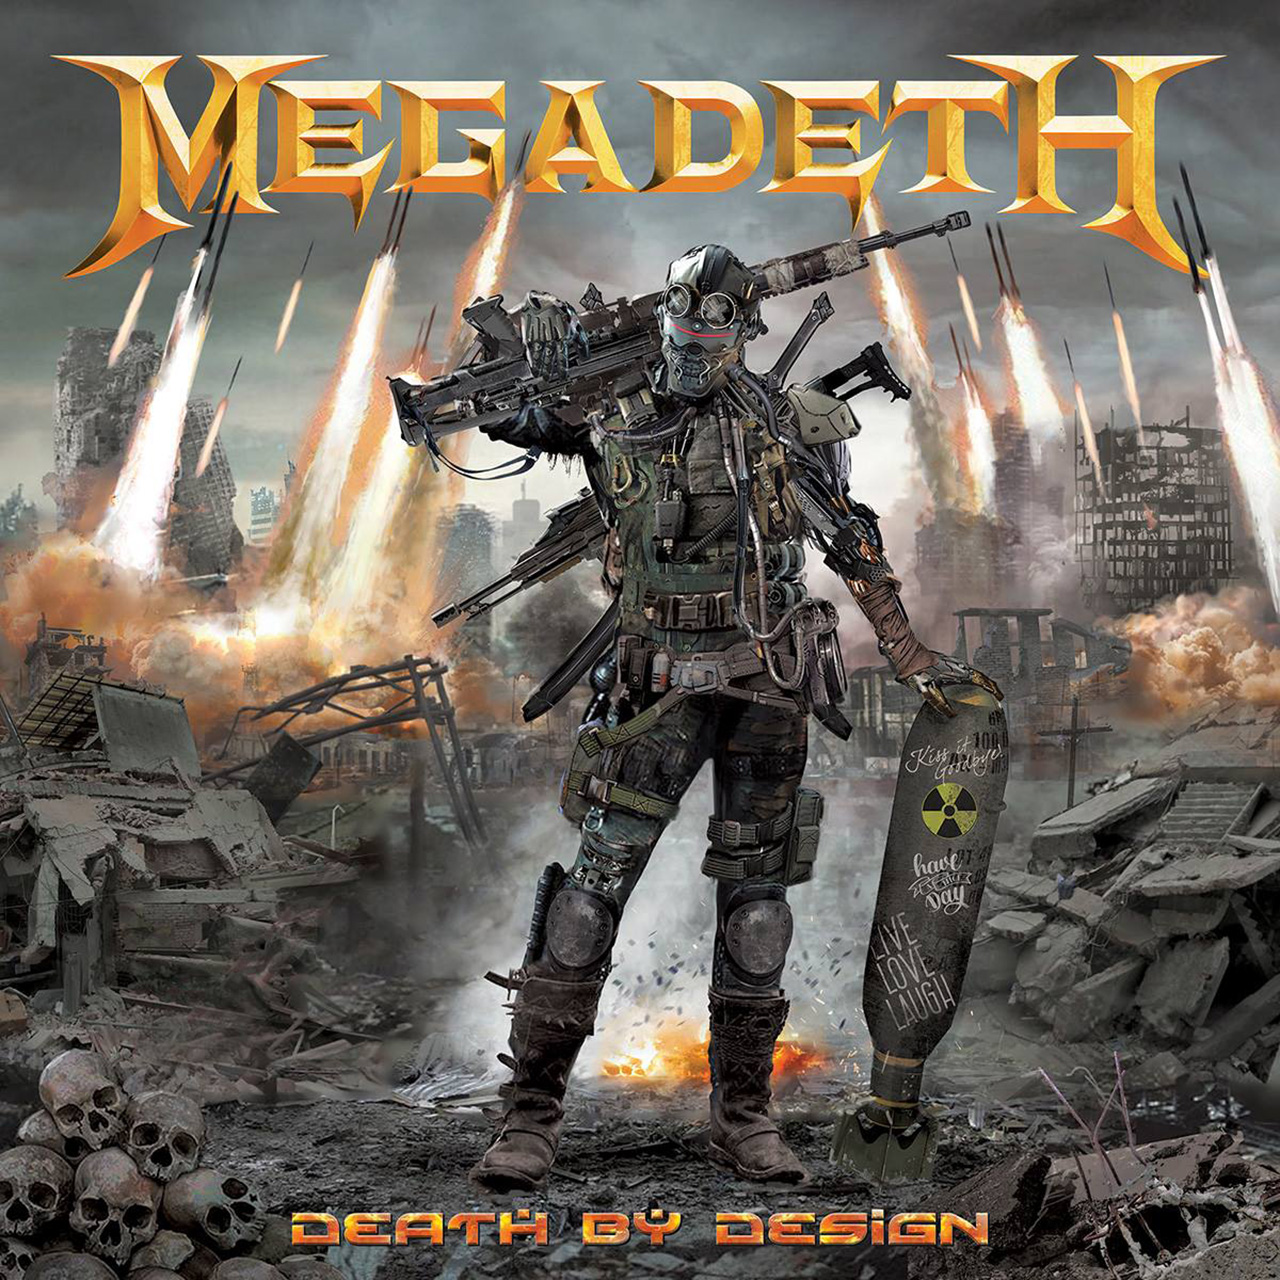 Dave Mustaine talks history of Megadeth in Death By Design video | Louder